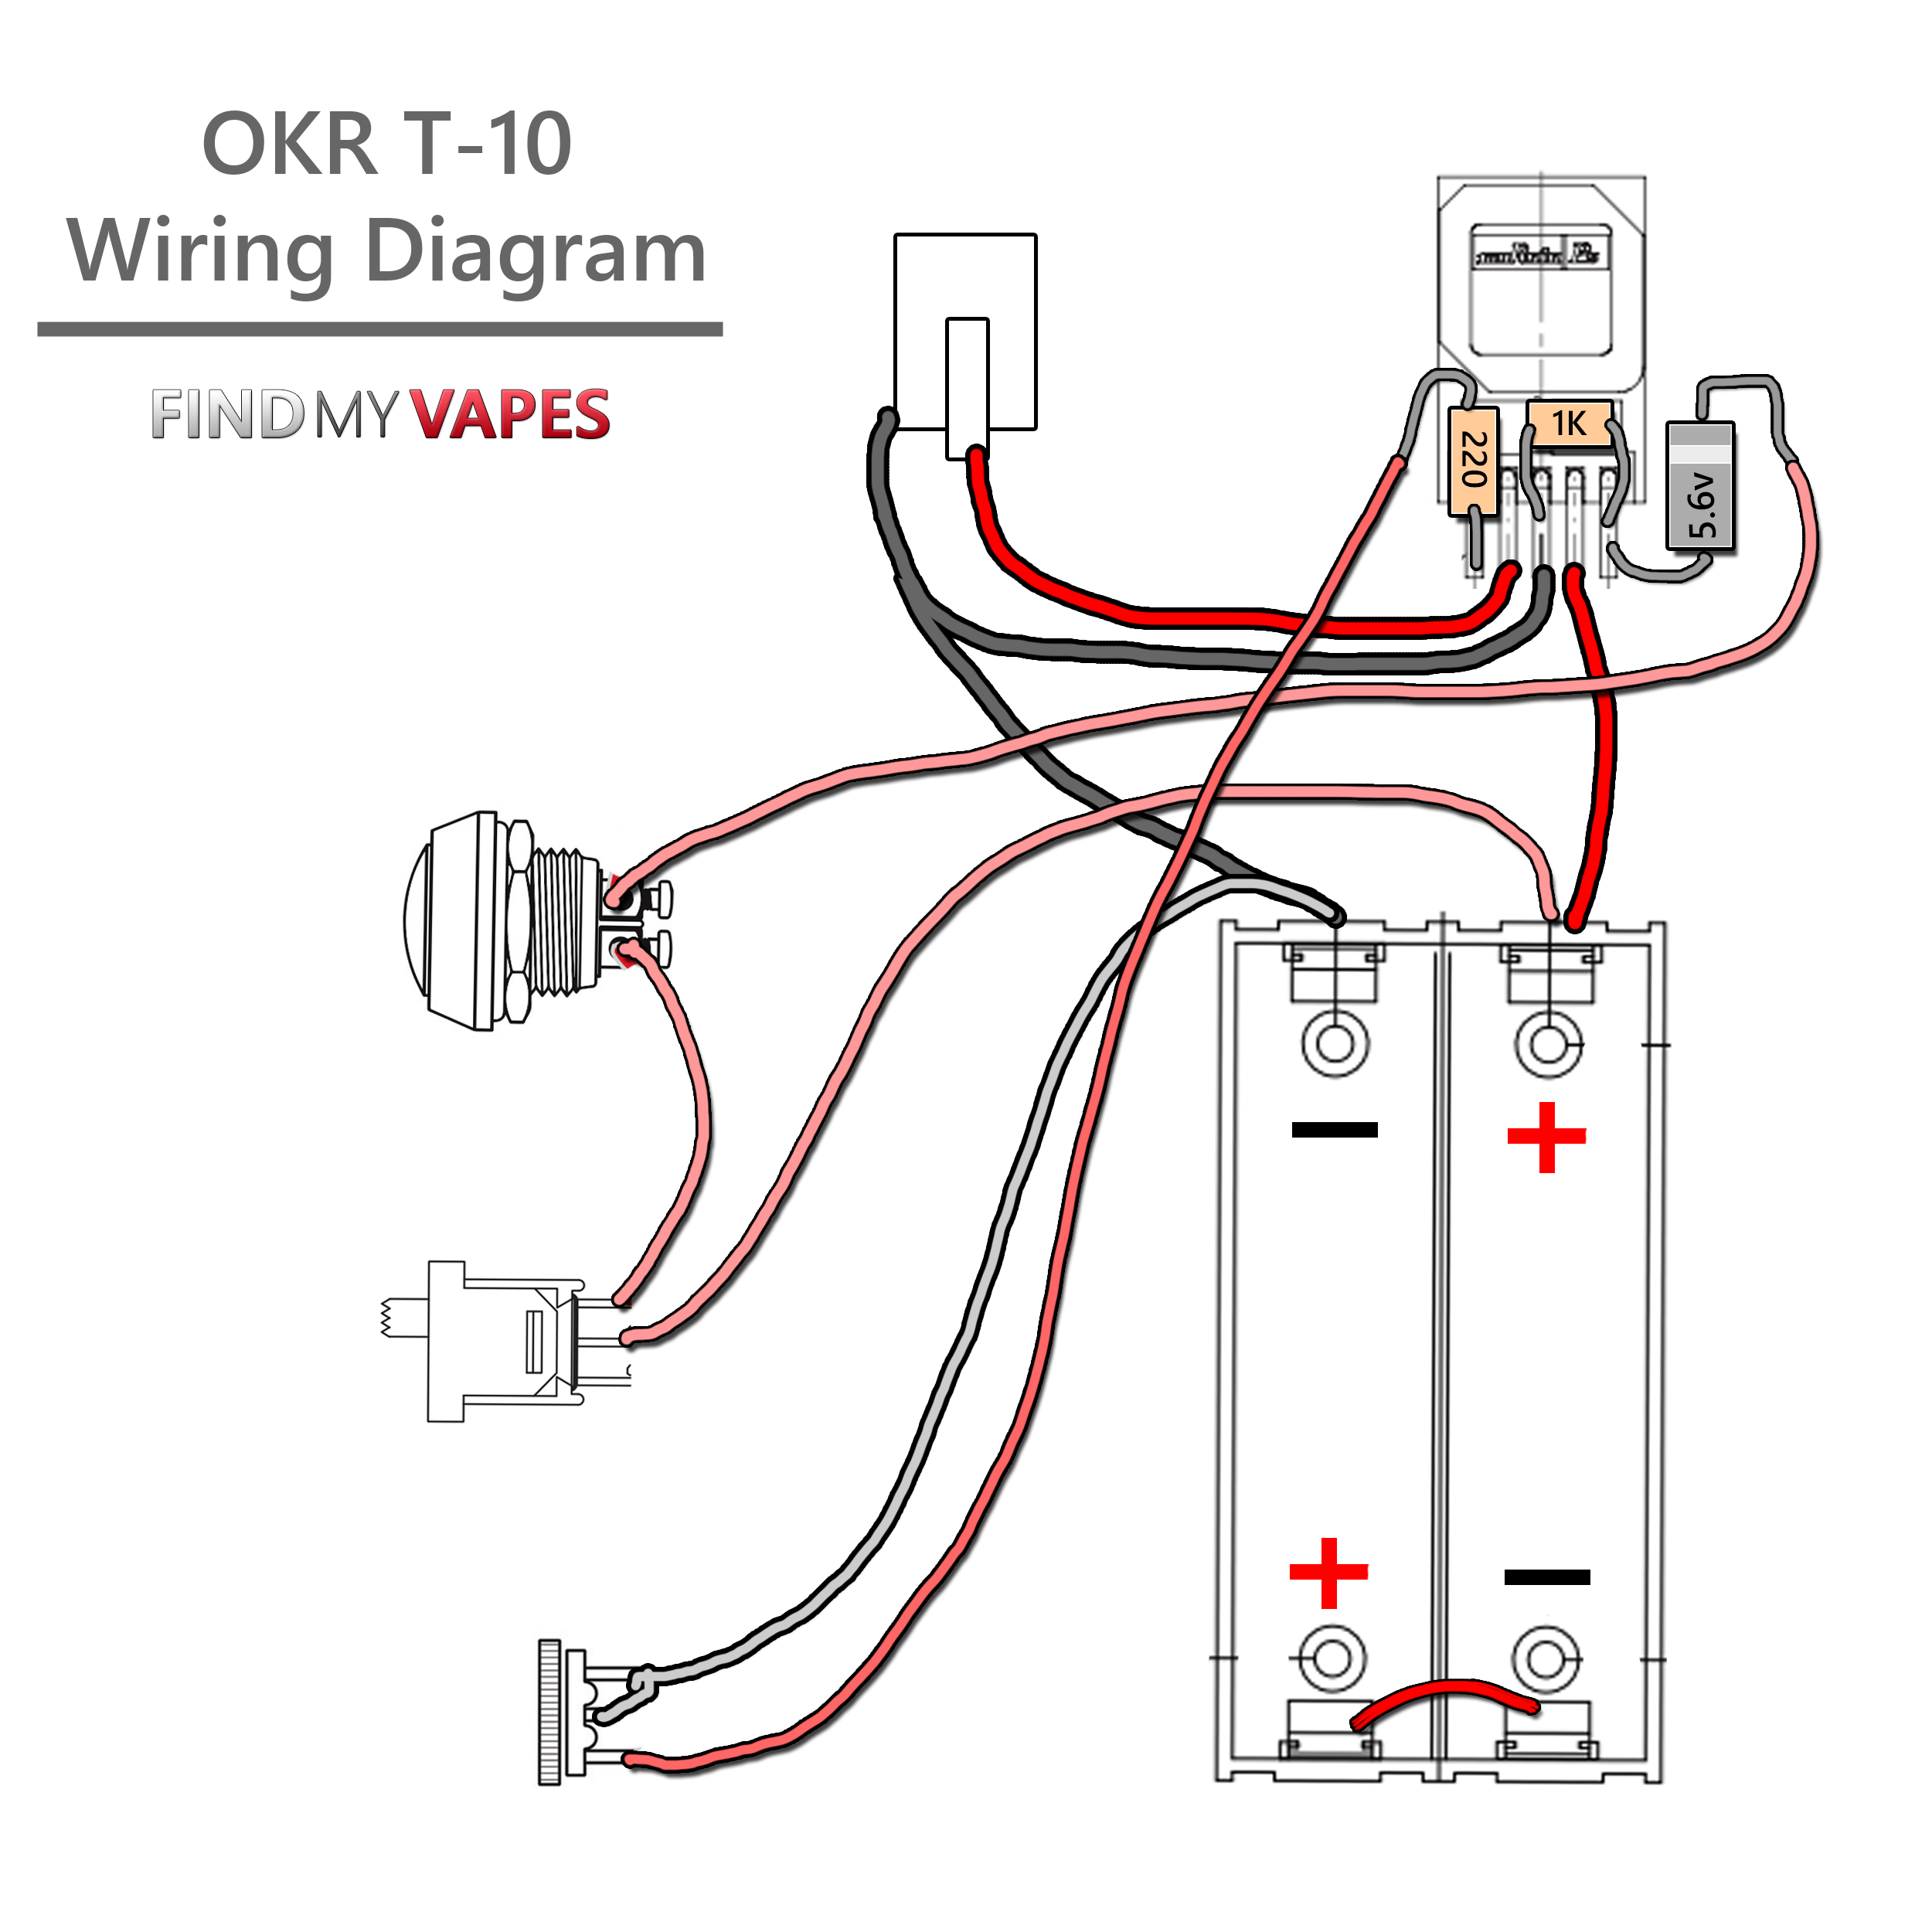 43f1f809f510551e90a2c59cd4315821 findmyvapes com how to build an okr box mod tutorial dna 200 wiring diagram at alyssarenee.co